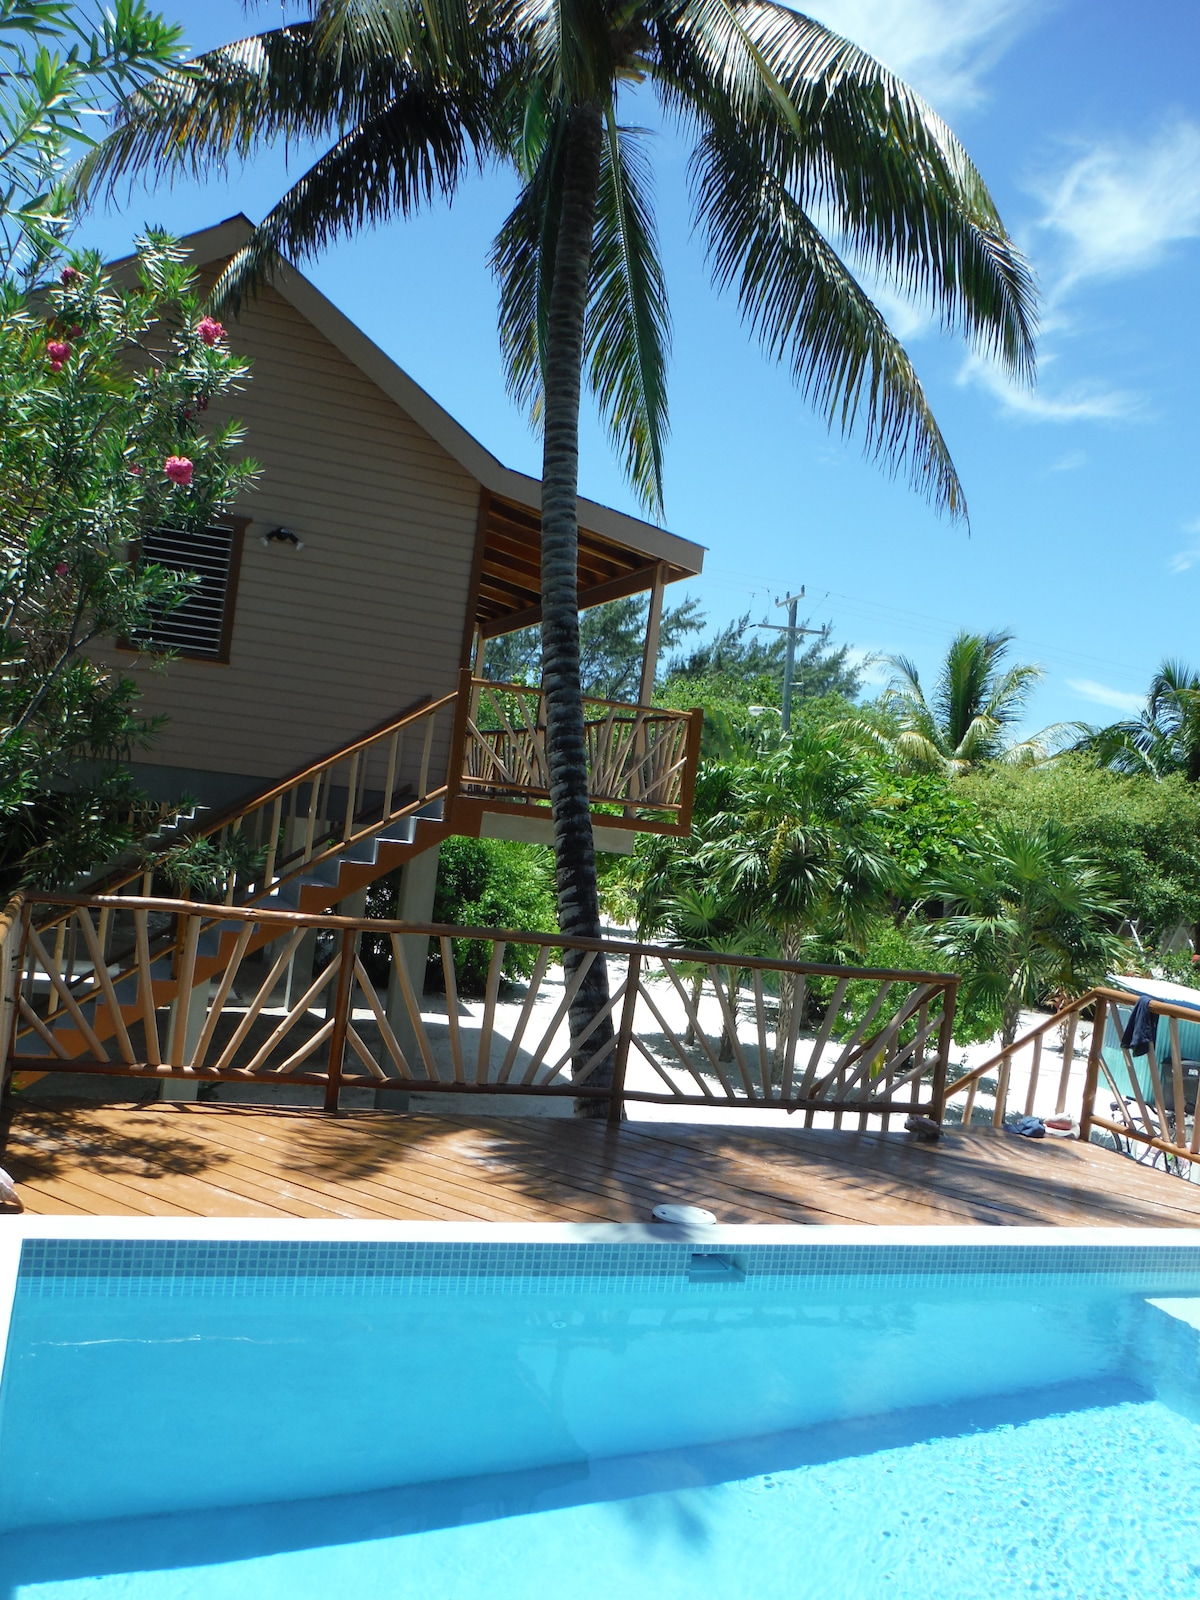 Rosco'S Faymous Hideaway - I No Know from Caye Caulker